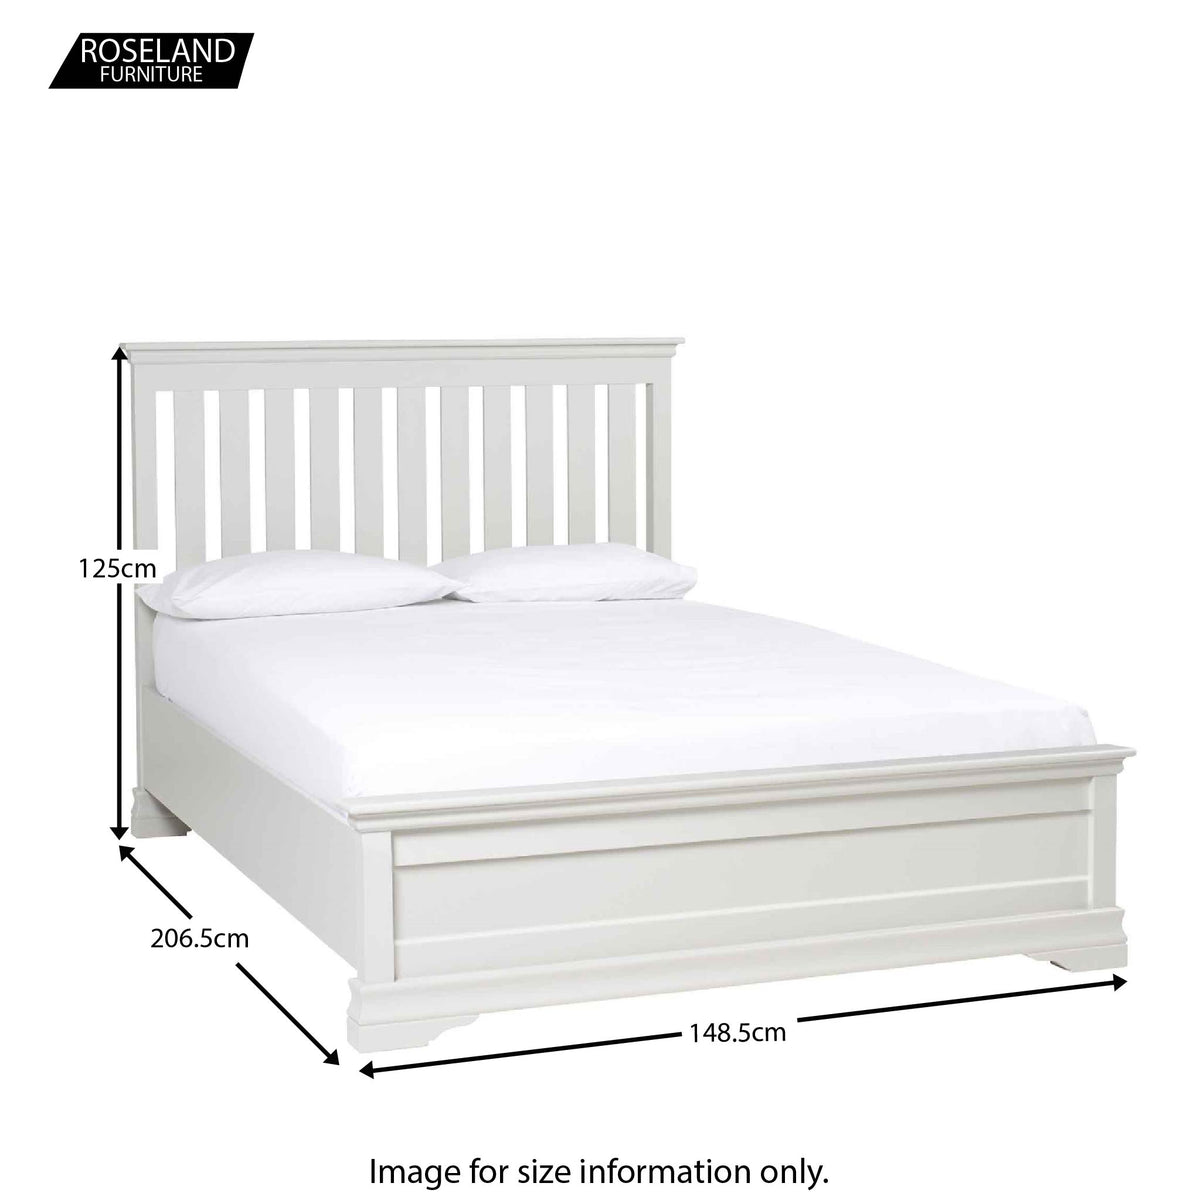 Dimensions for the Melrose White 4ft6 Double Bed Frame